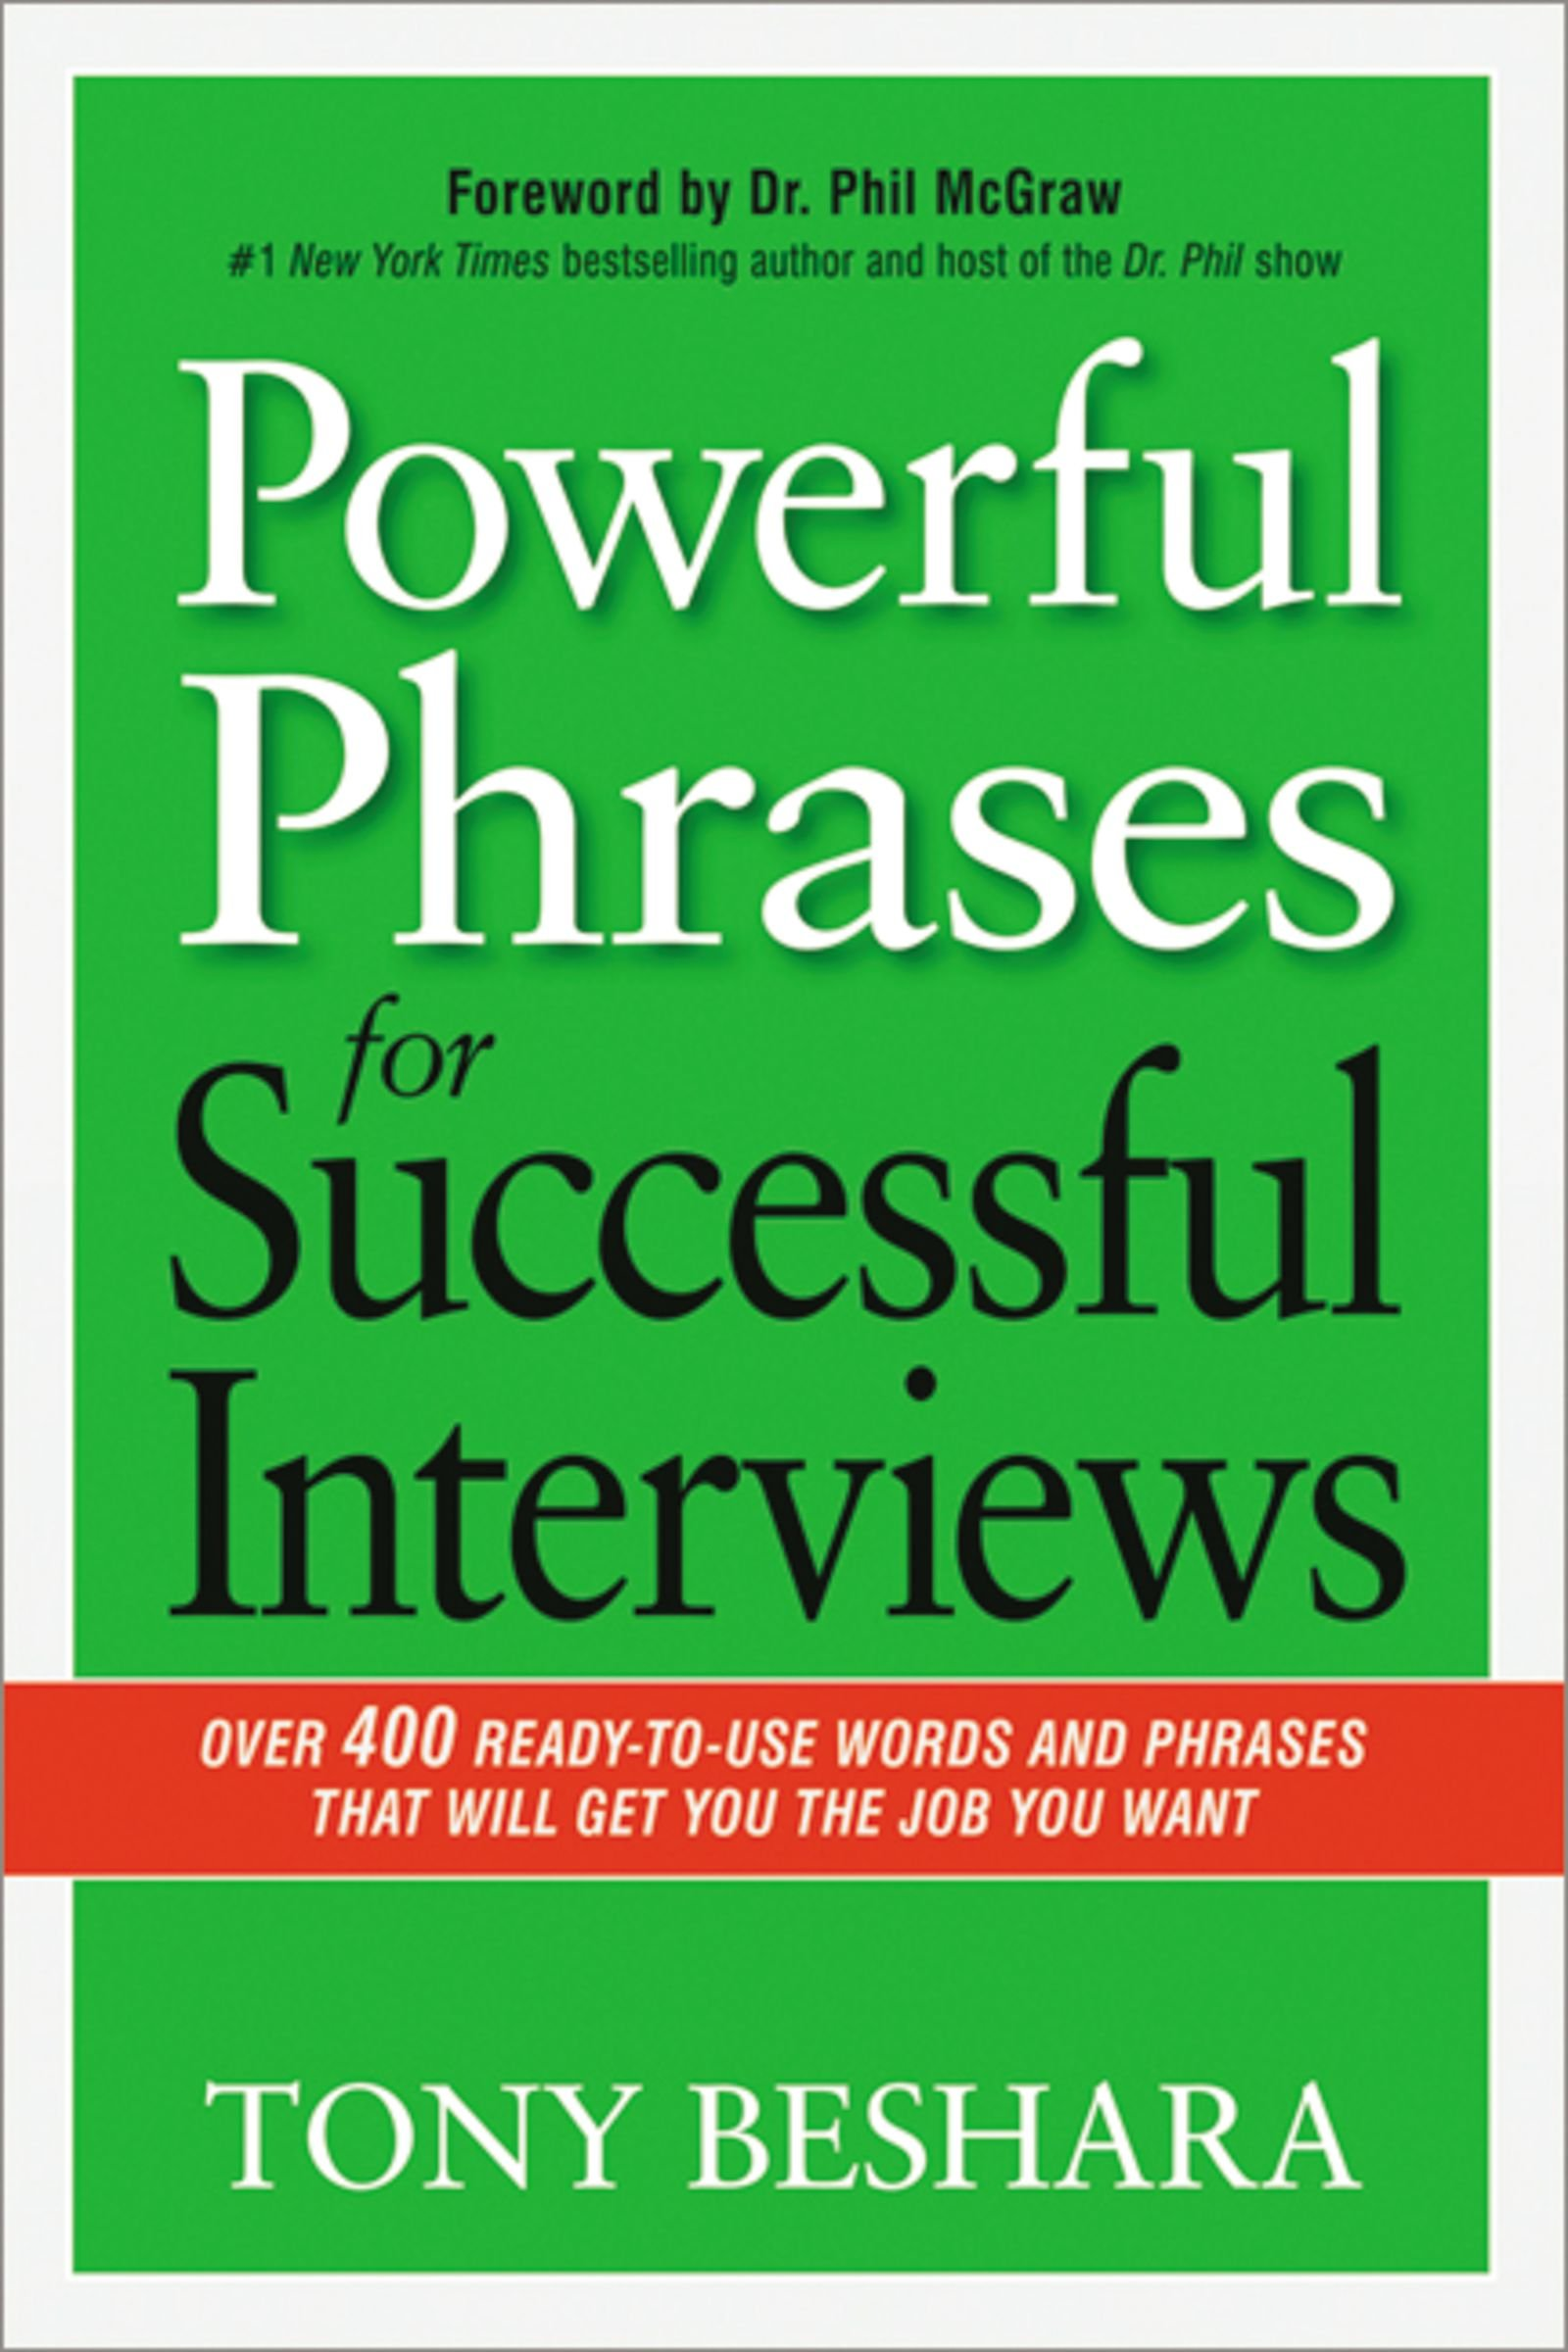 Powerful Phrases for Successful Interviews: Over 400 Ready-to-Use Words and Phrases That Will Get You the Job You Want by AMACOM